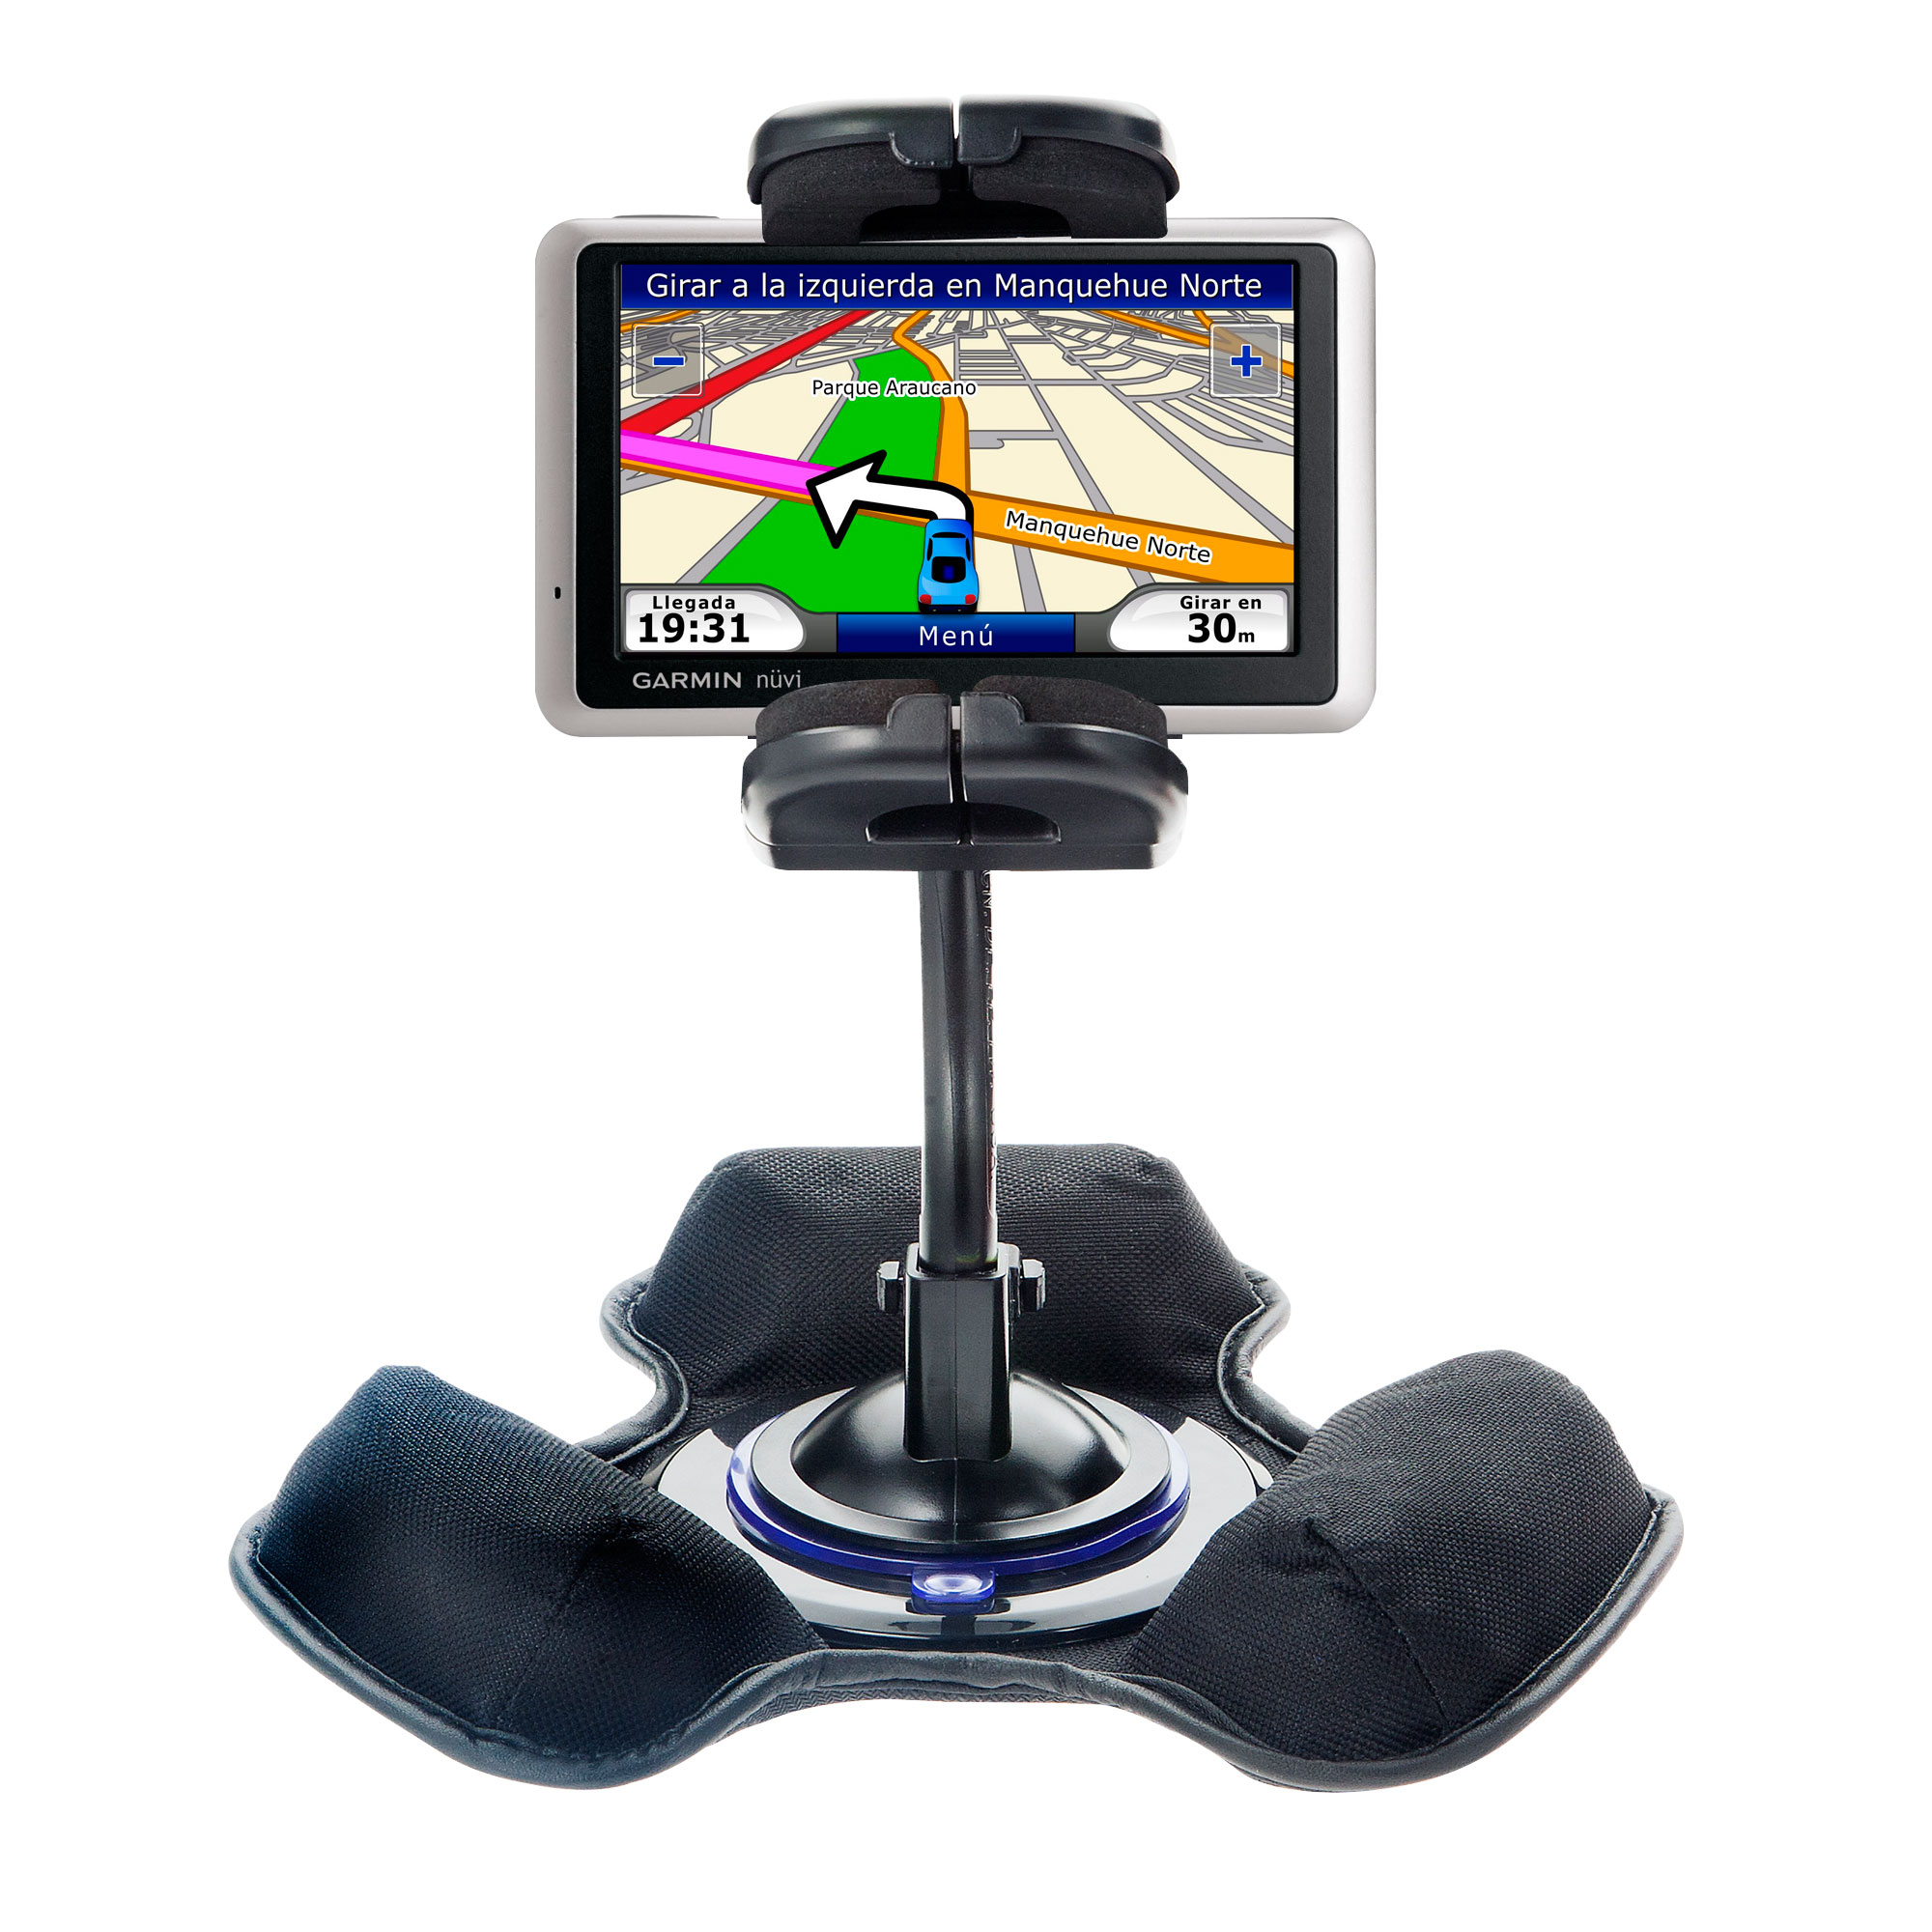 Dash and Windshield Holder compatible with the Garmin Nuvi 1350